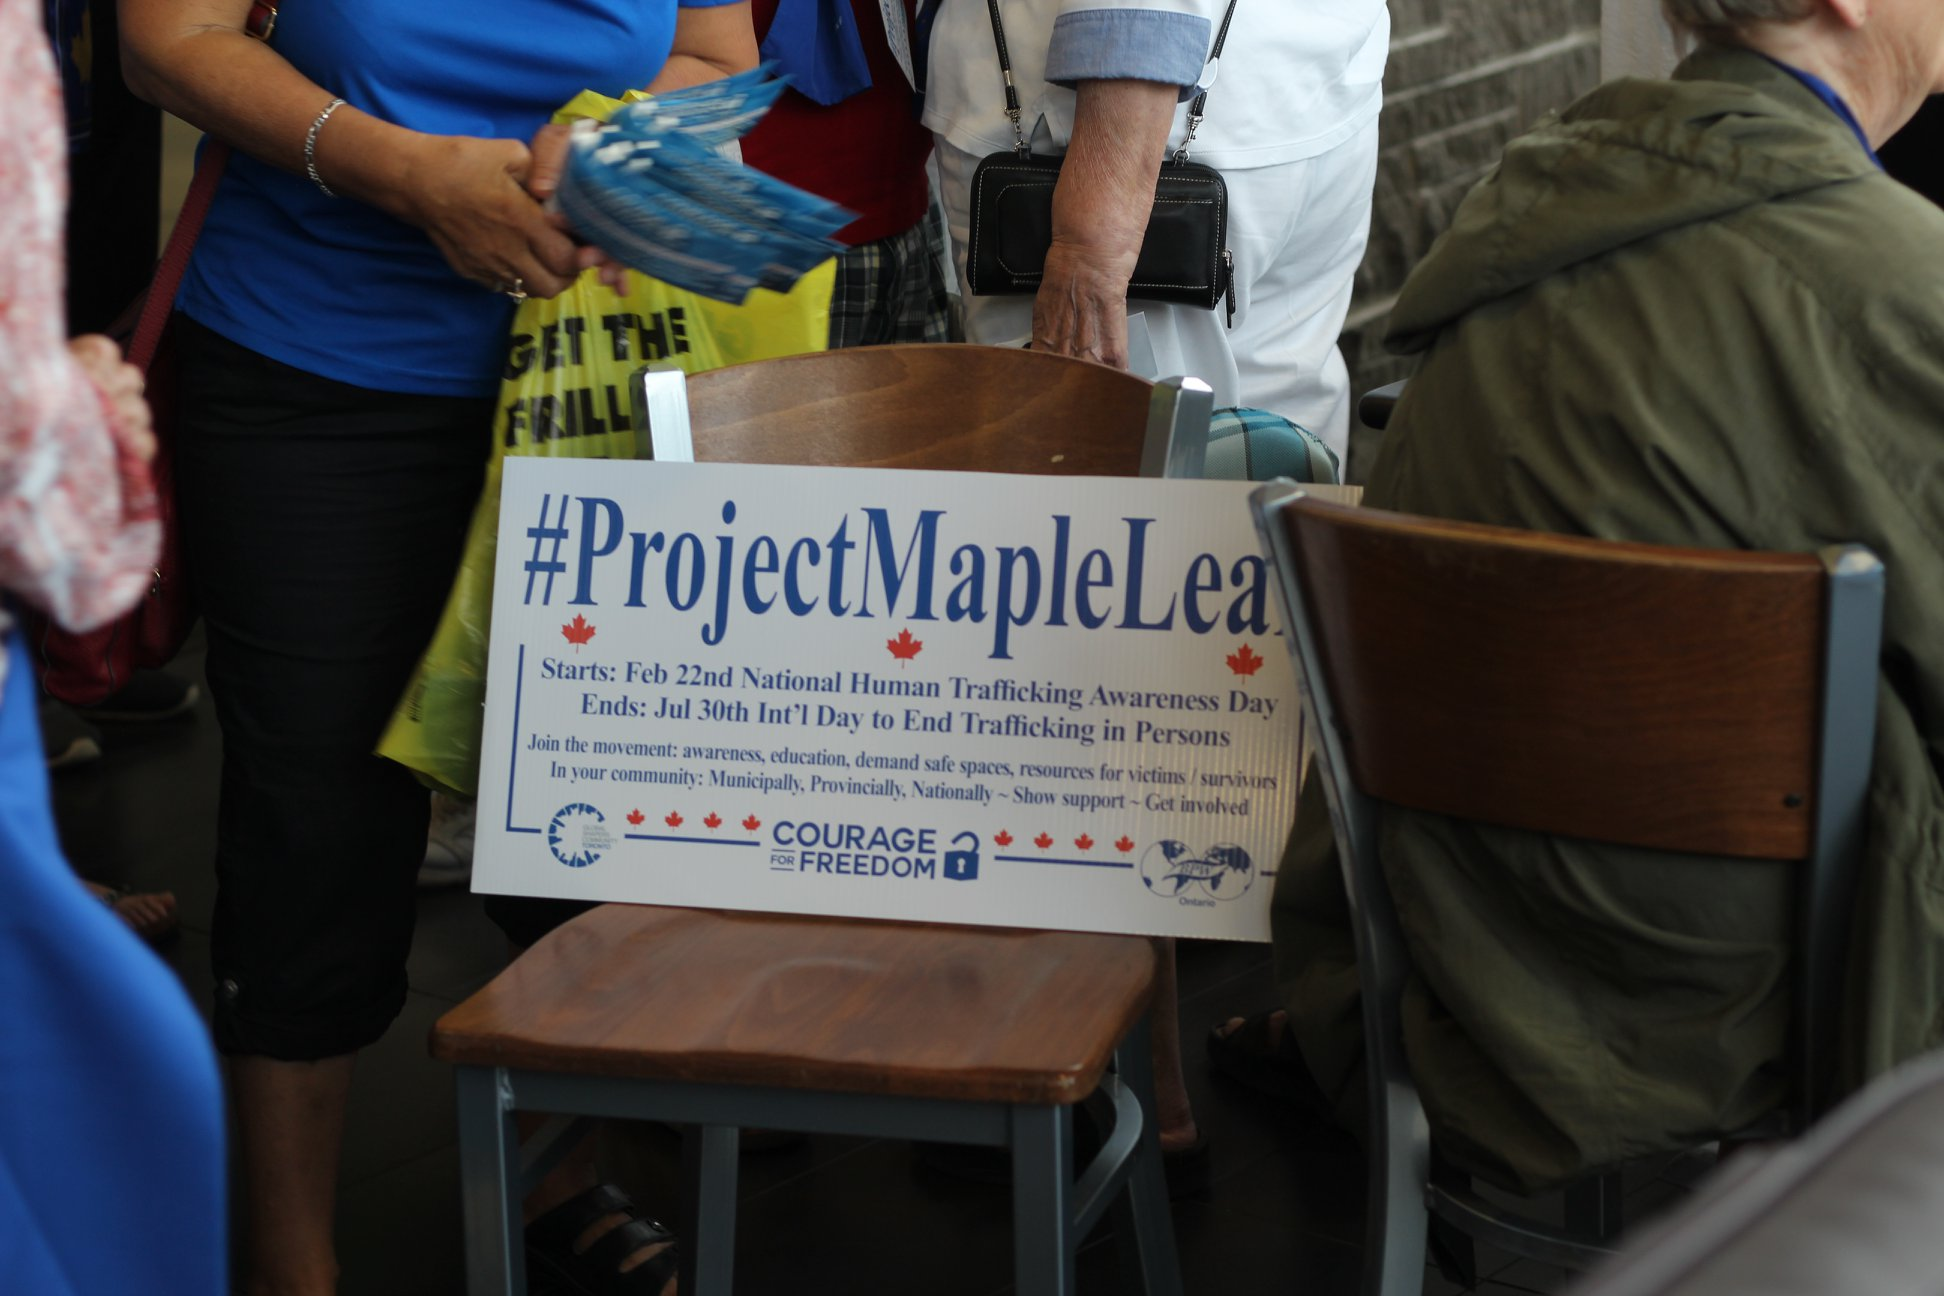 Project Maple Leaf